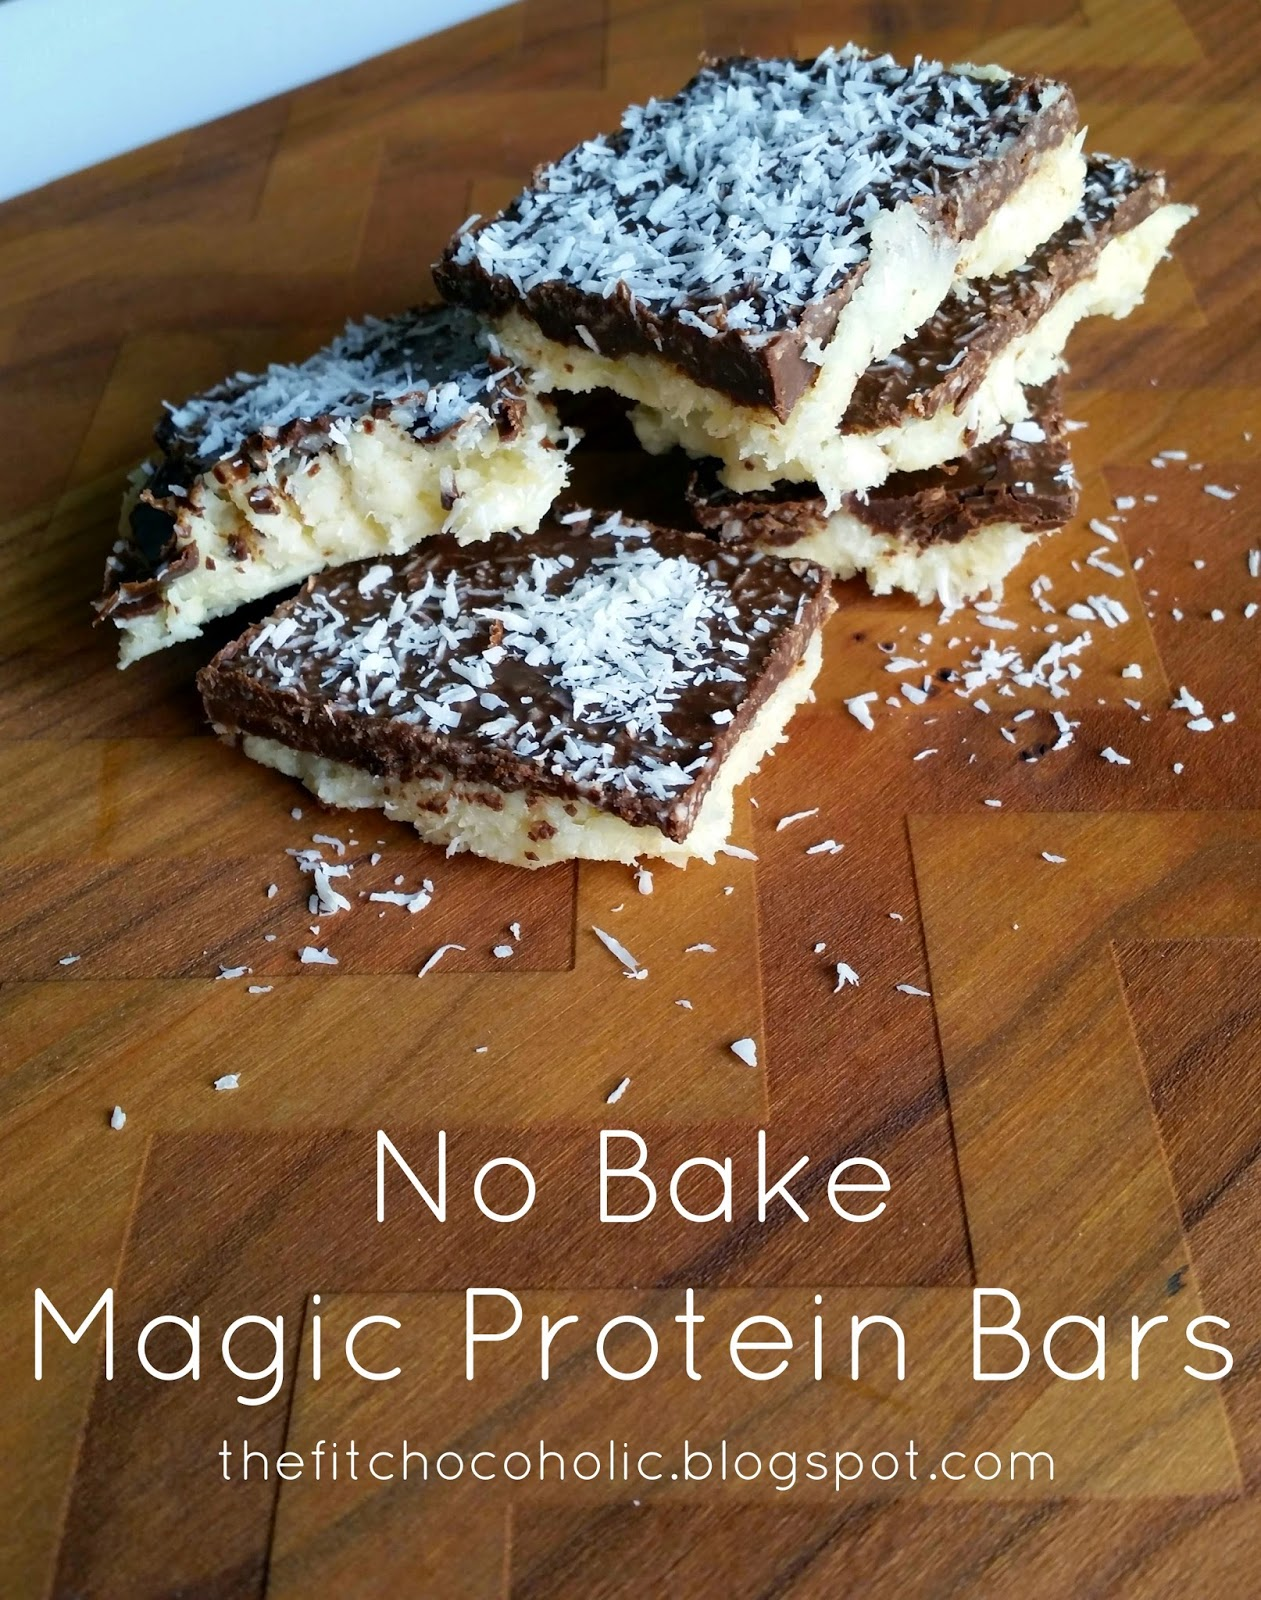 The Fit Chocoholic: No Bake Magic Protein Bars